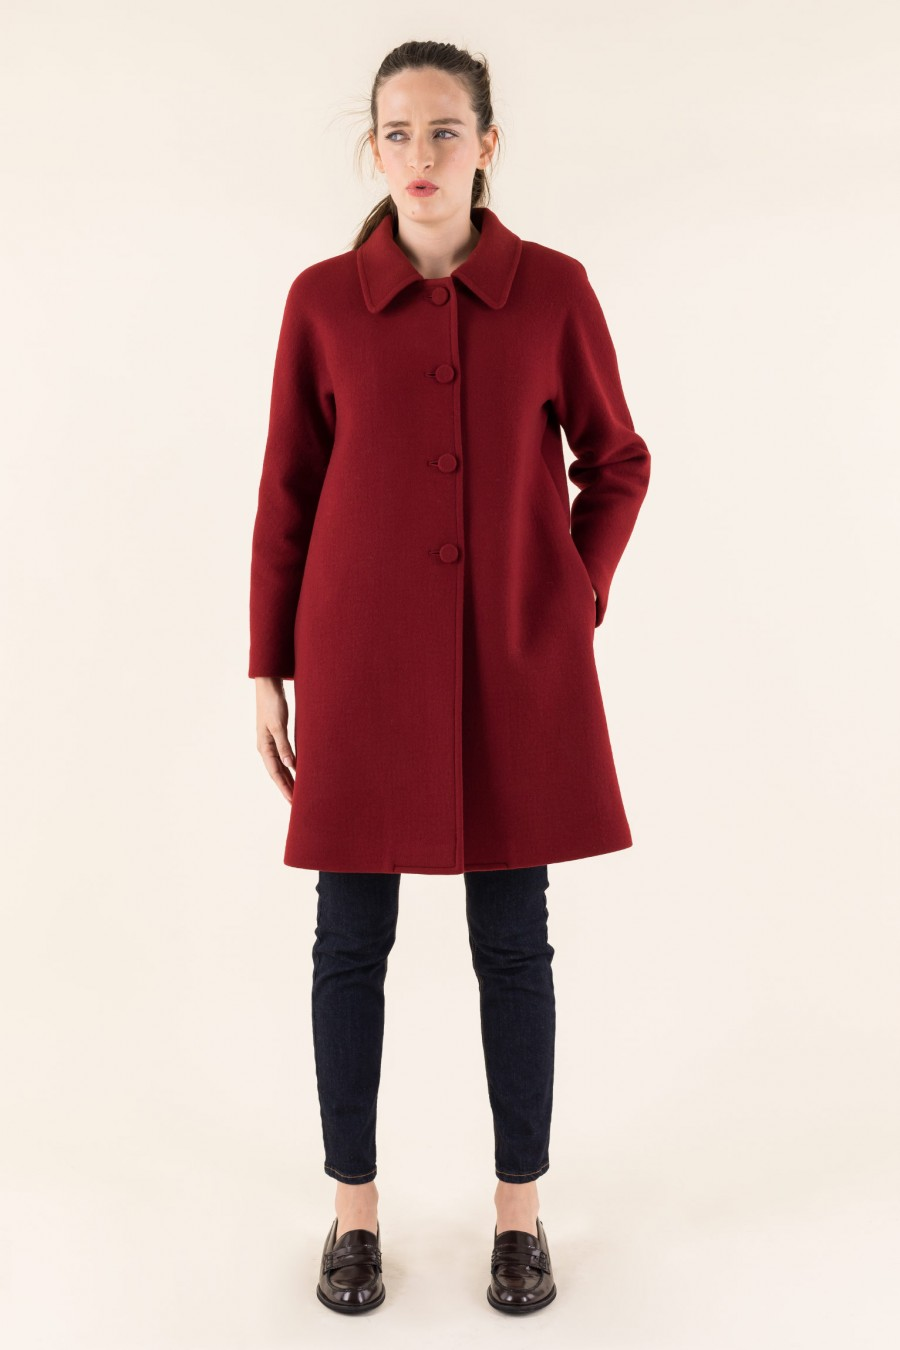 Burgundy coat with buttons